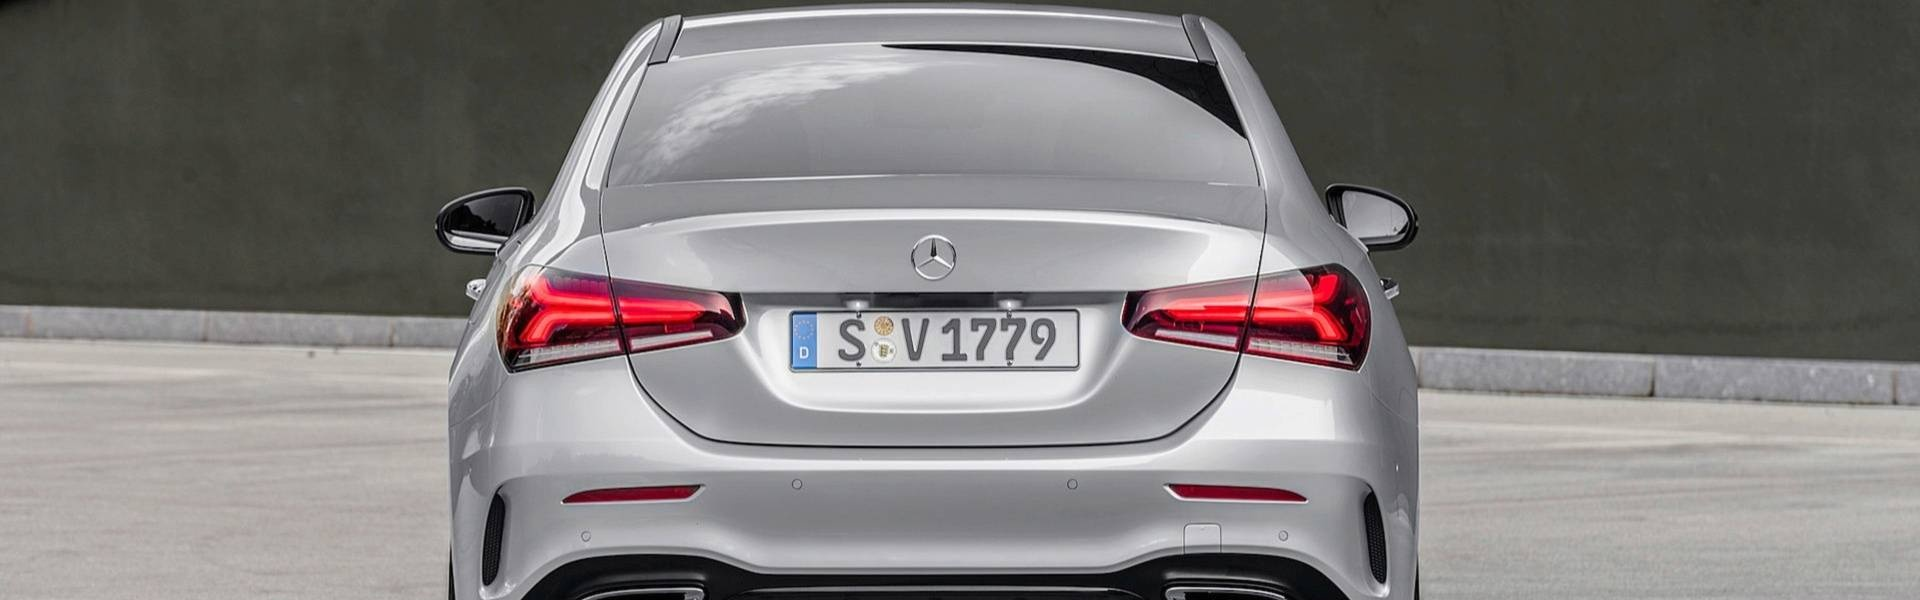 2019-mercedes-benz-a-class-sedan (8).jpg